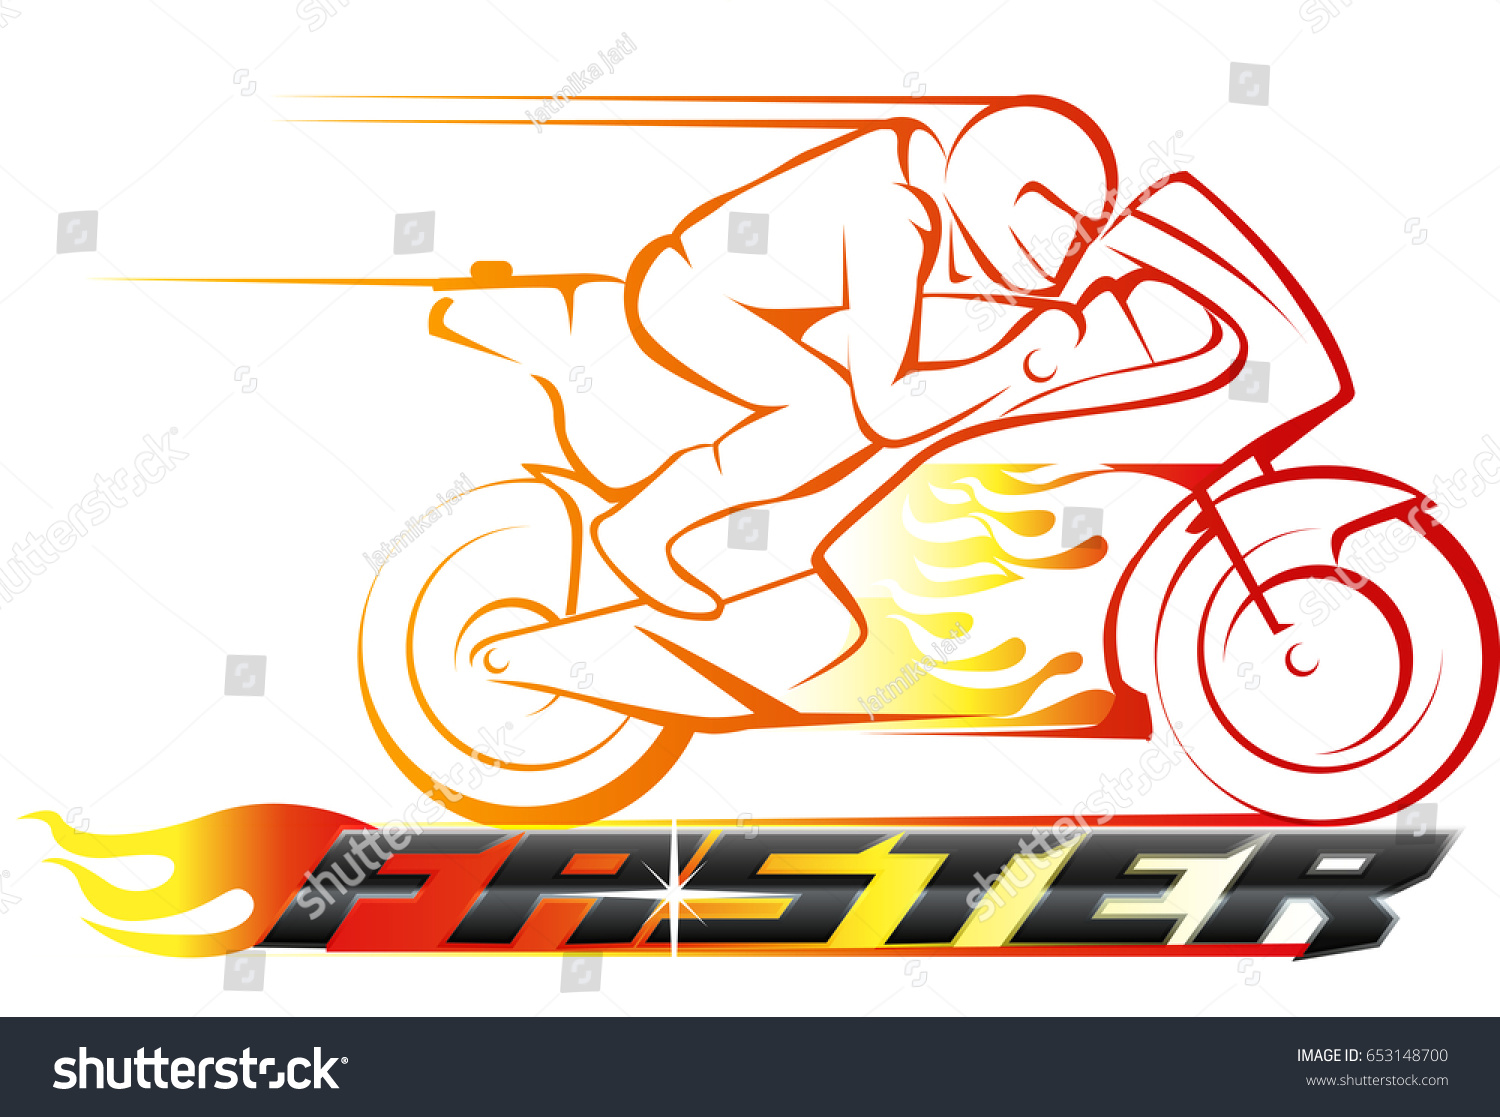 Vector abstract motor racing on fire stock vector 653148700